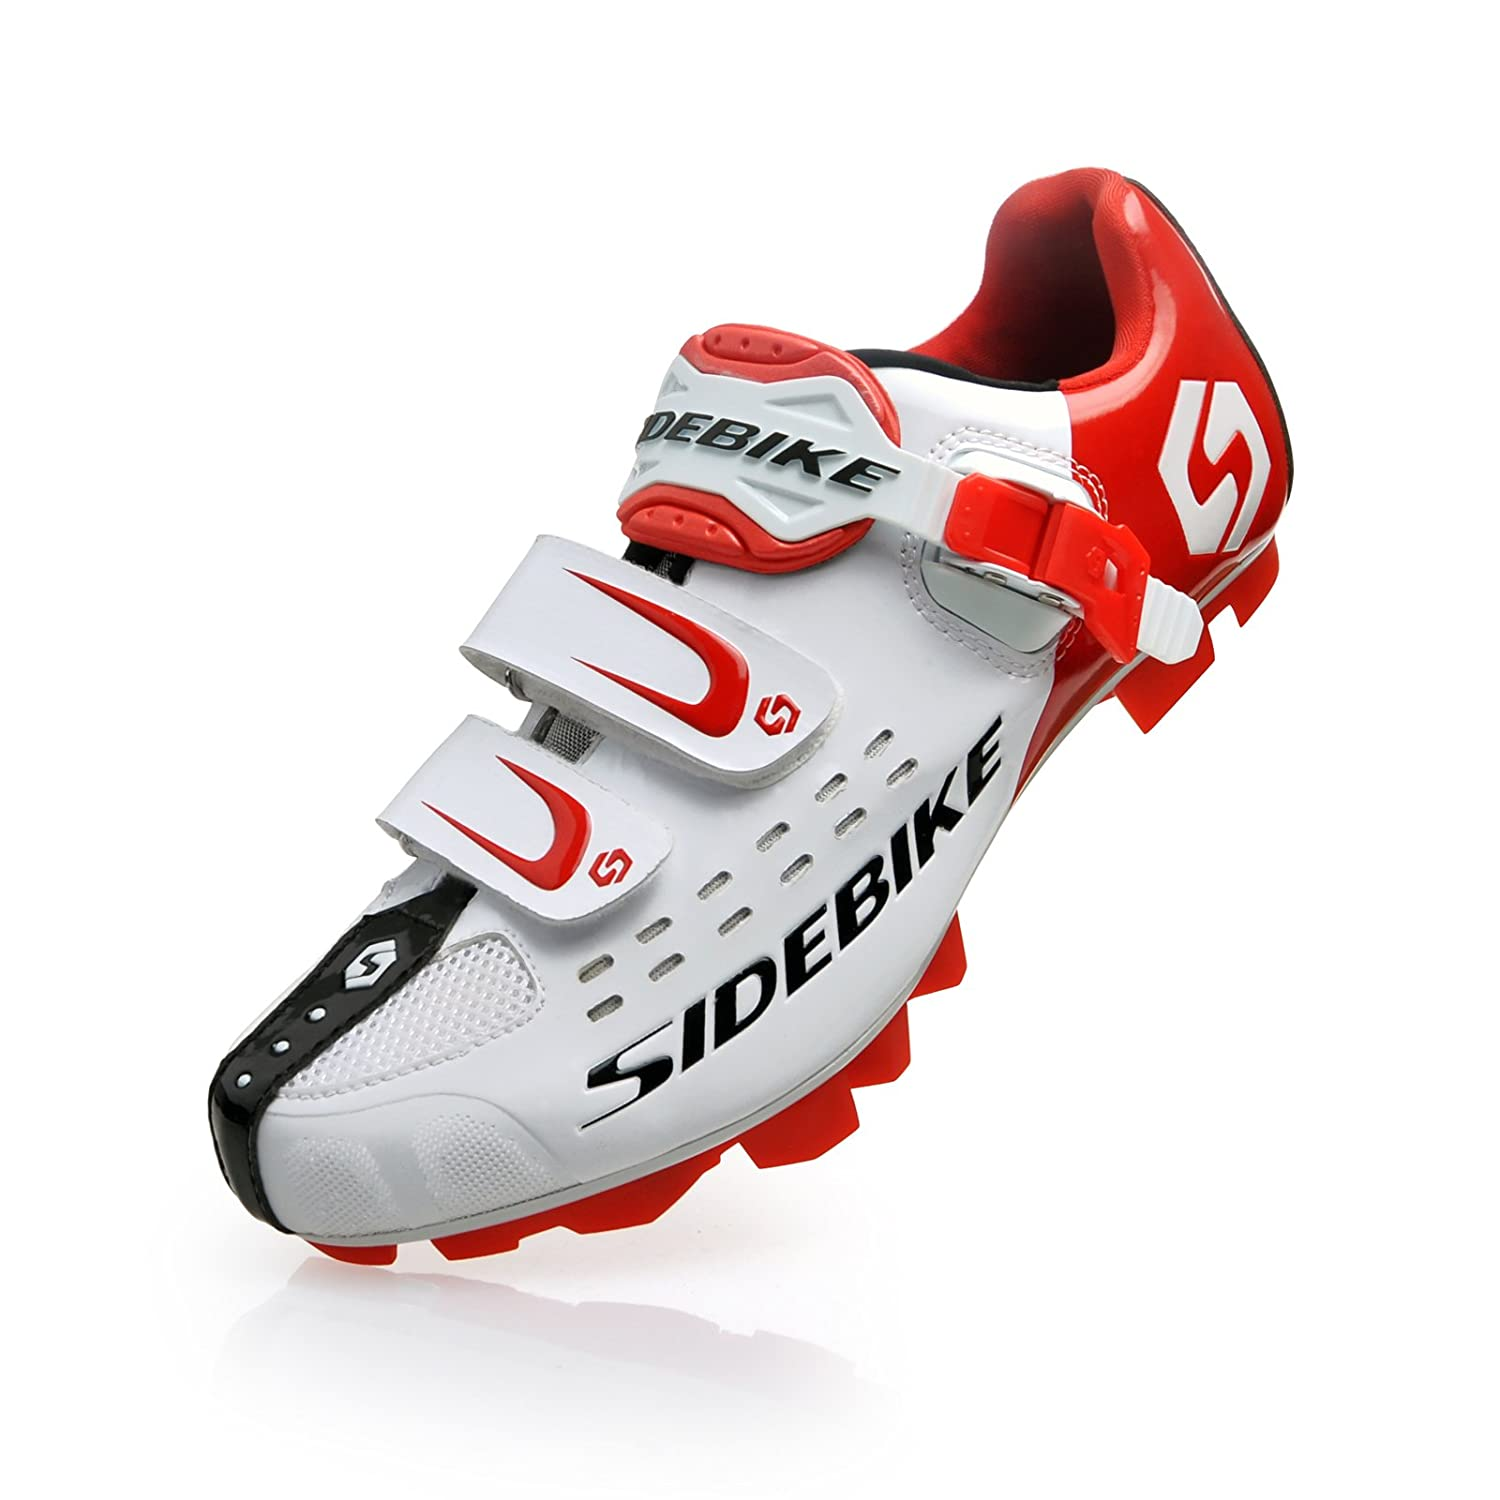 Smartodoors Cycling Shoes withカーボンSolesまたはナイロンTpu SolesのロードとMTB US9/EU42/Ft26.5cm SD01-MTB-White/red B01AAA94H4